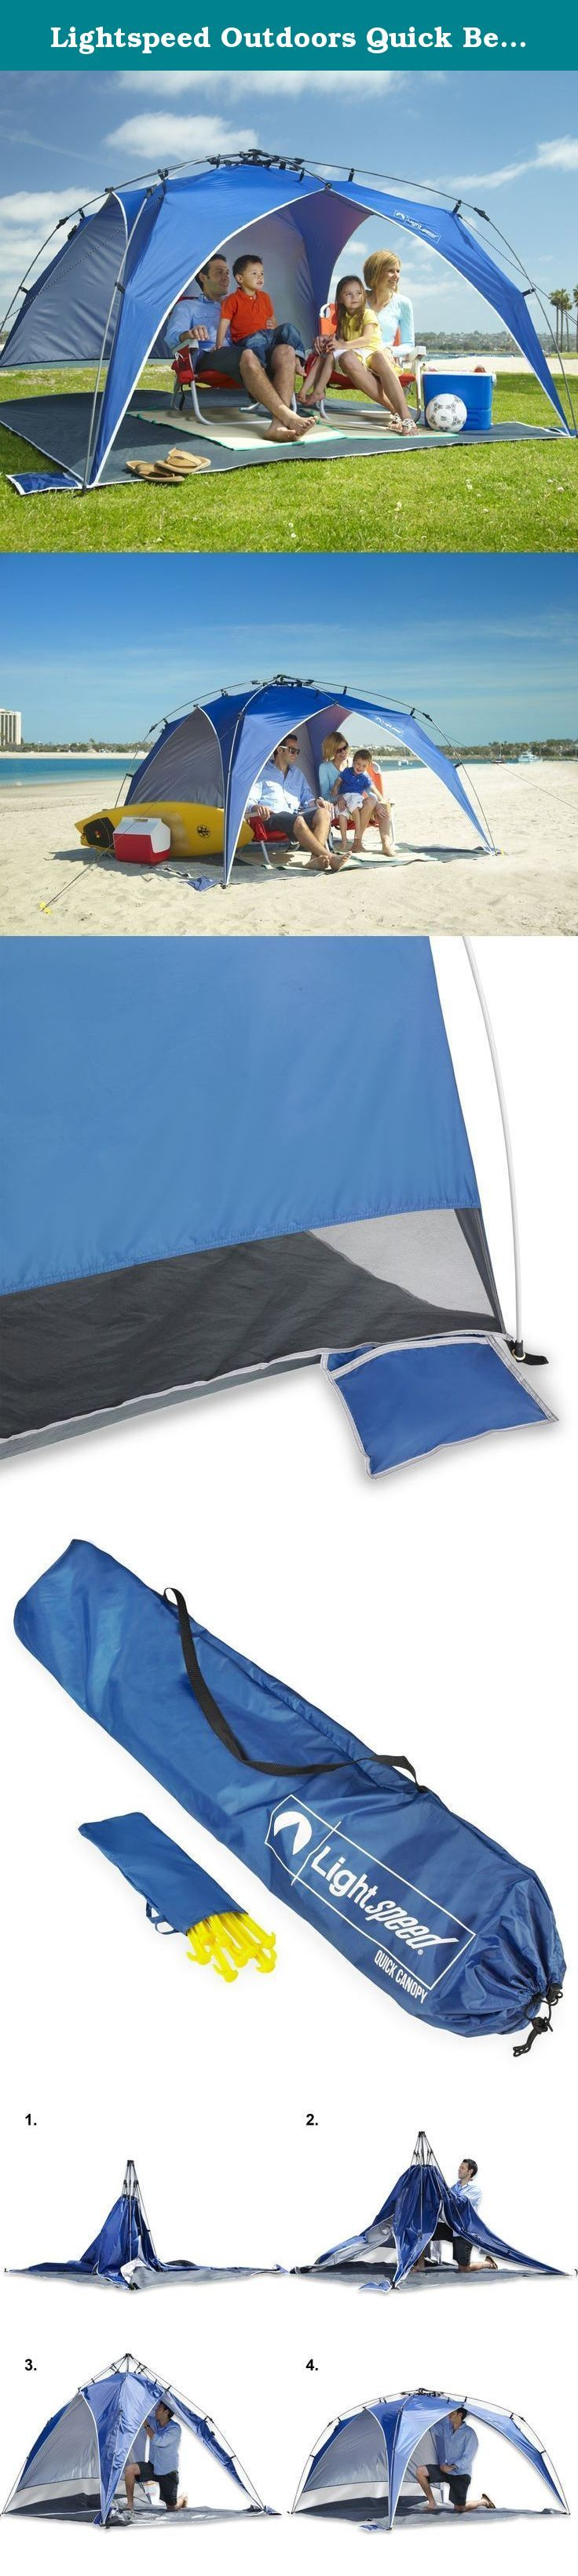 Lightspeed Outdoors Quick Beach Canopy Tent, Blue. Great for beaches, parks, and sporting events, the Lightspeed Outdoors Quick Beach Canopy Tent is the perfect place to get out of the sun. It features a built-in sidewall that protects from the sun and wind. The beach canopy provides UPF 50+ shade for all-day outdoor fun on the sidelines with your team, on the sand, at the park or in the backyard. The Lightspeed Outdoors' integrated poles and bottom-pull hub system, allows for instant set…